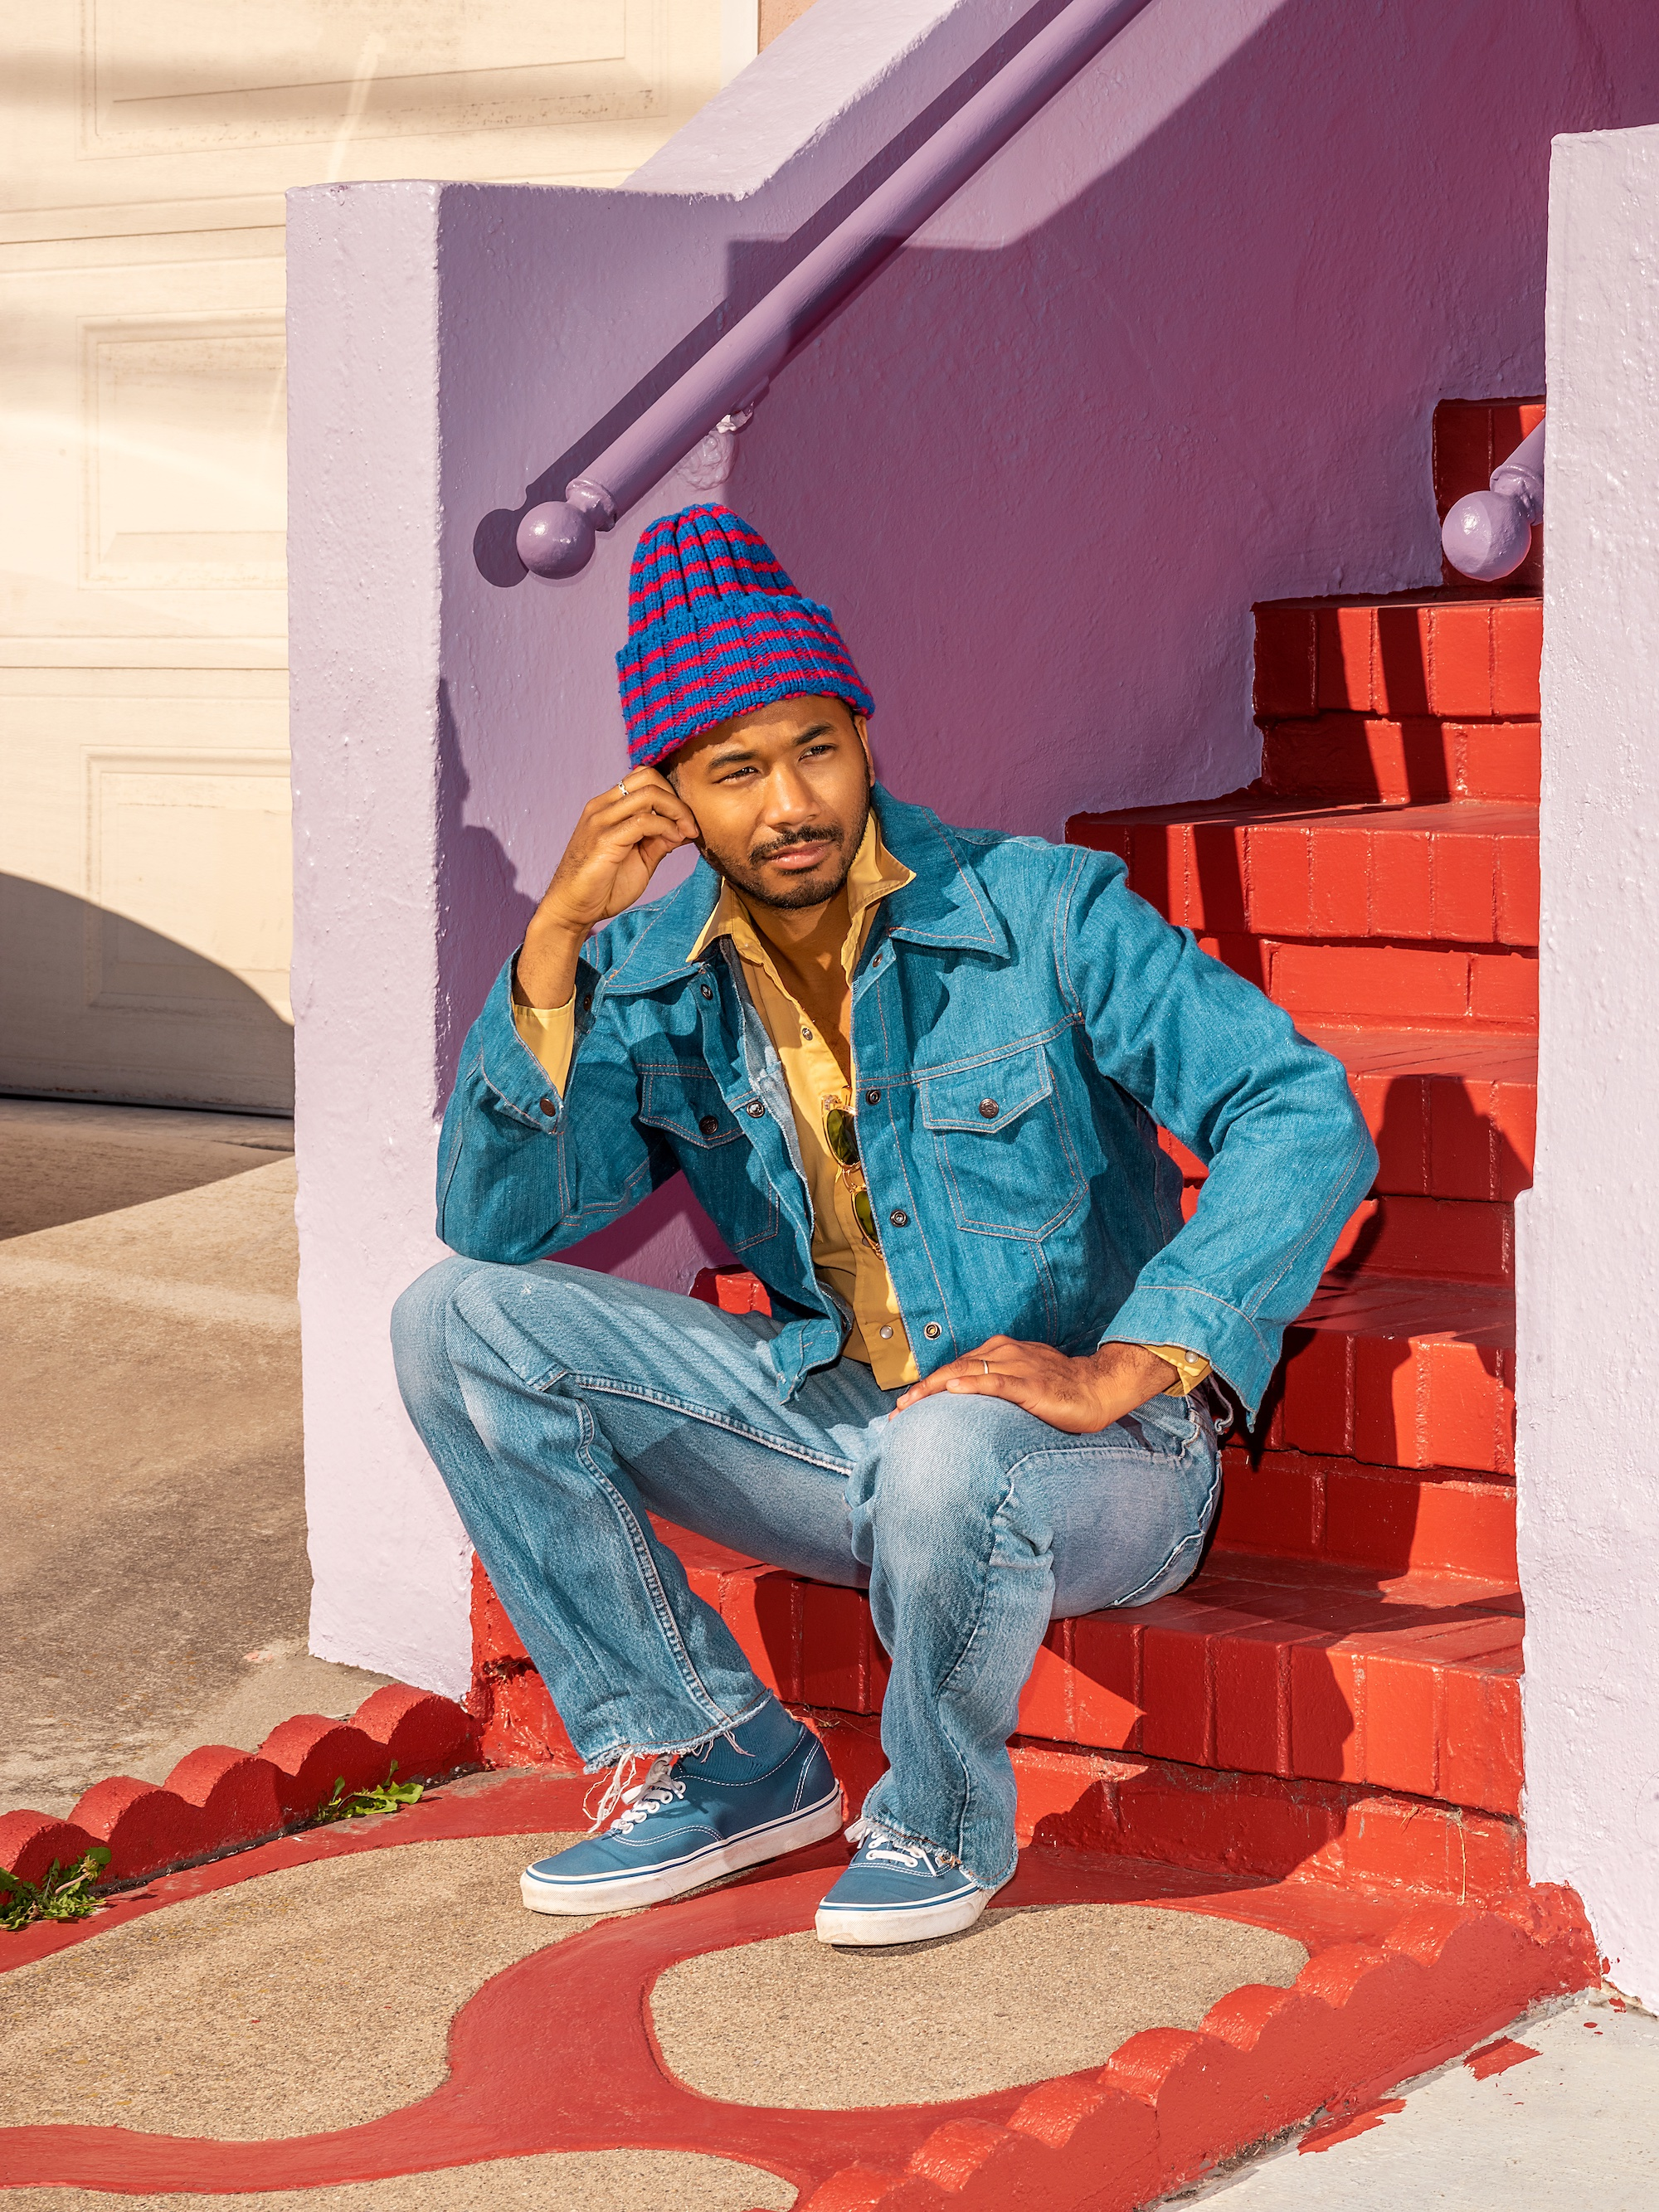 UofSC alum Chaz Bundick is posed sitting on a colorful staircase. He is wearing a beanie and a jean jacket.